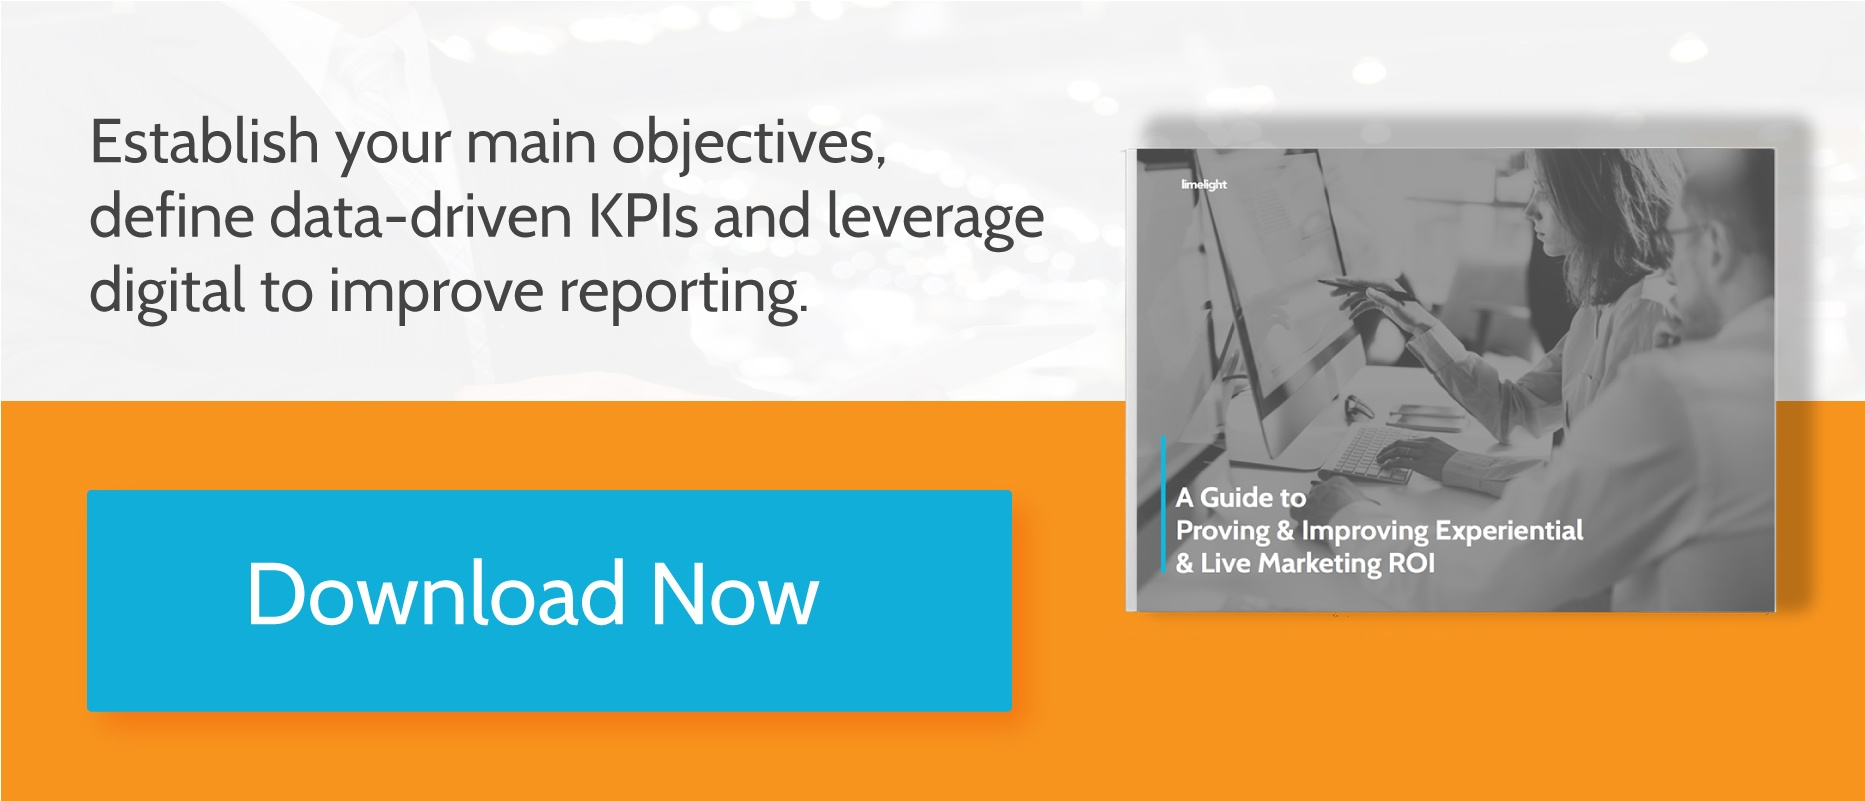 CTA image to view A Guide To Proving & Improving Experiential & Live Marketing ROI eBook